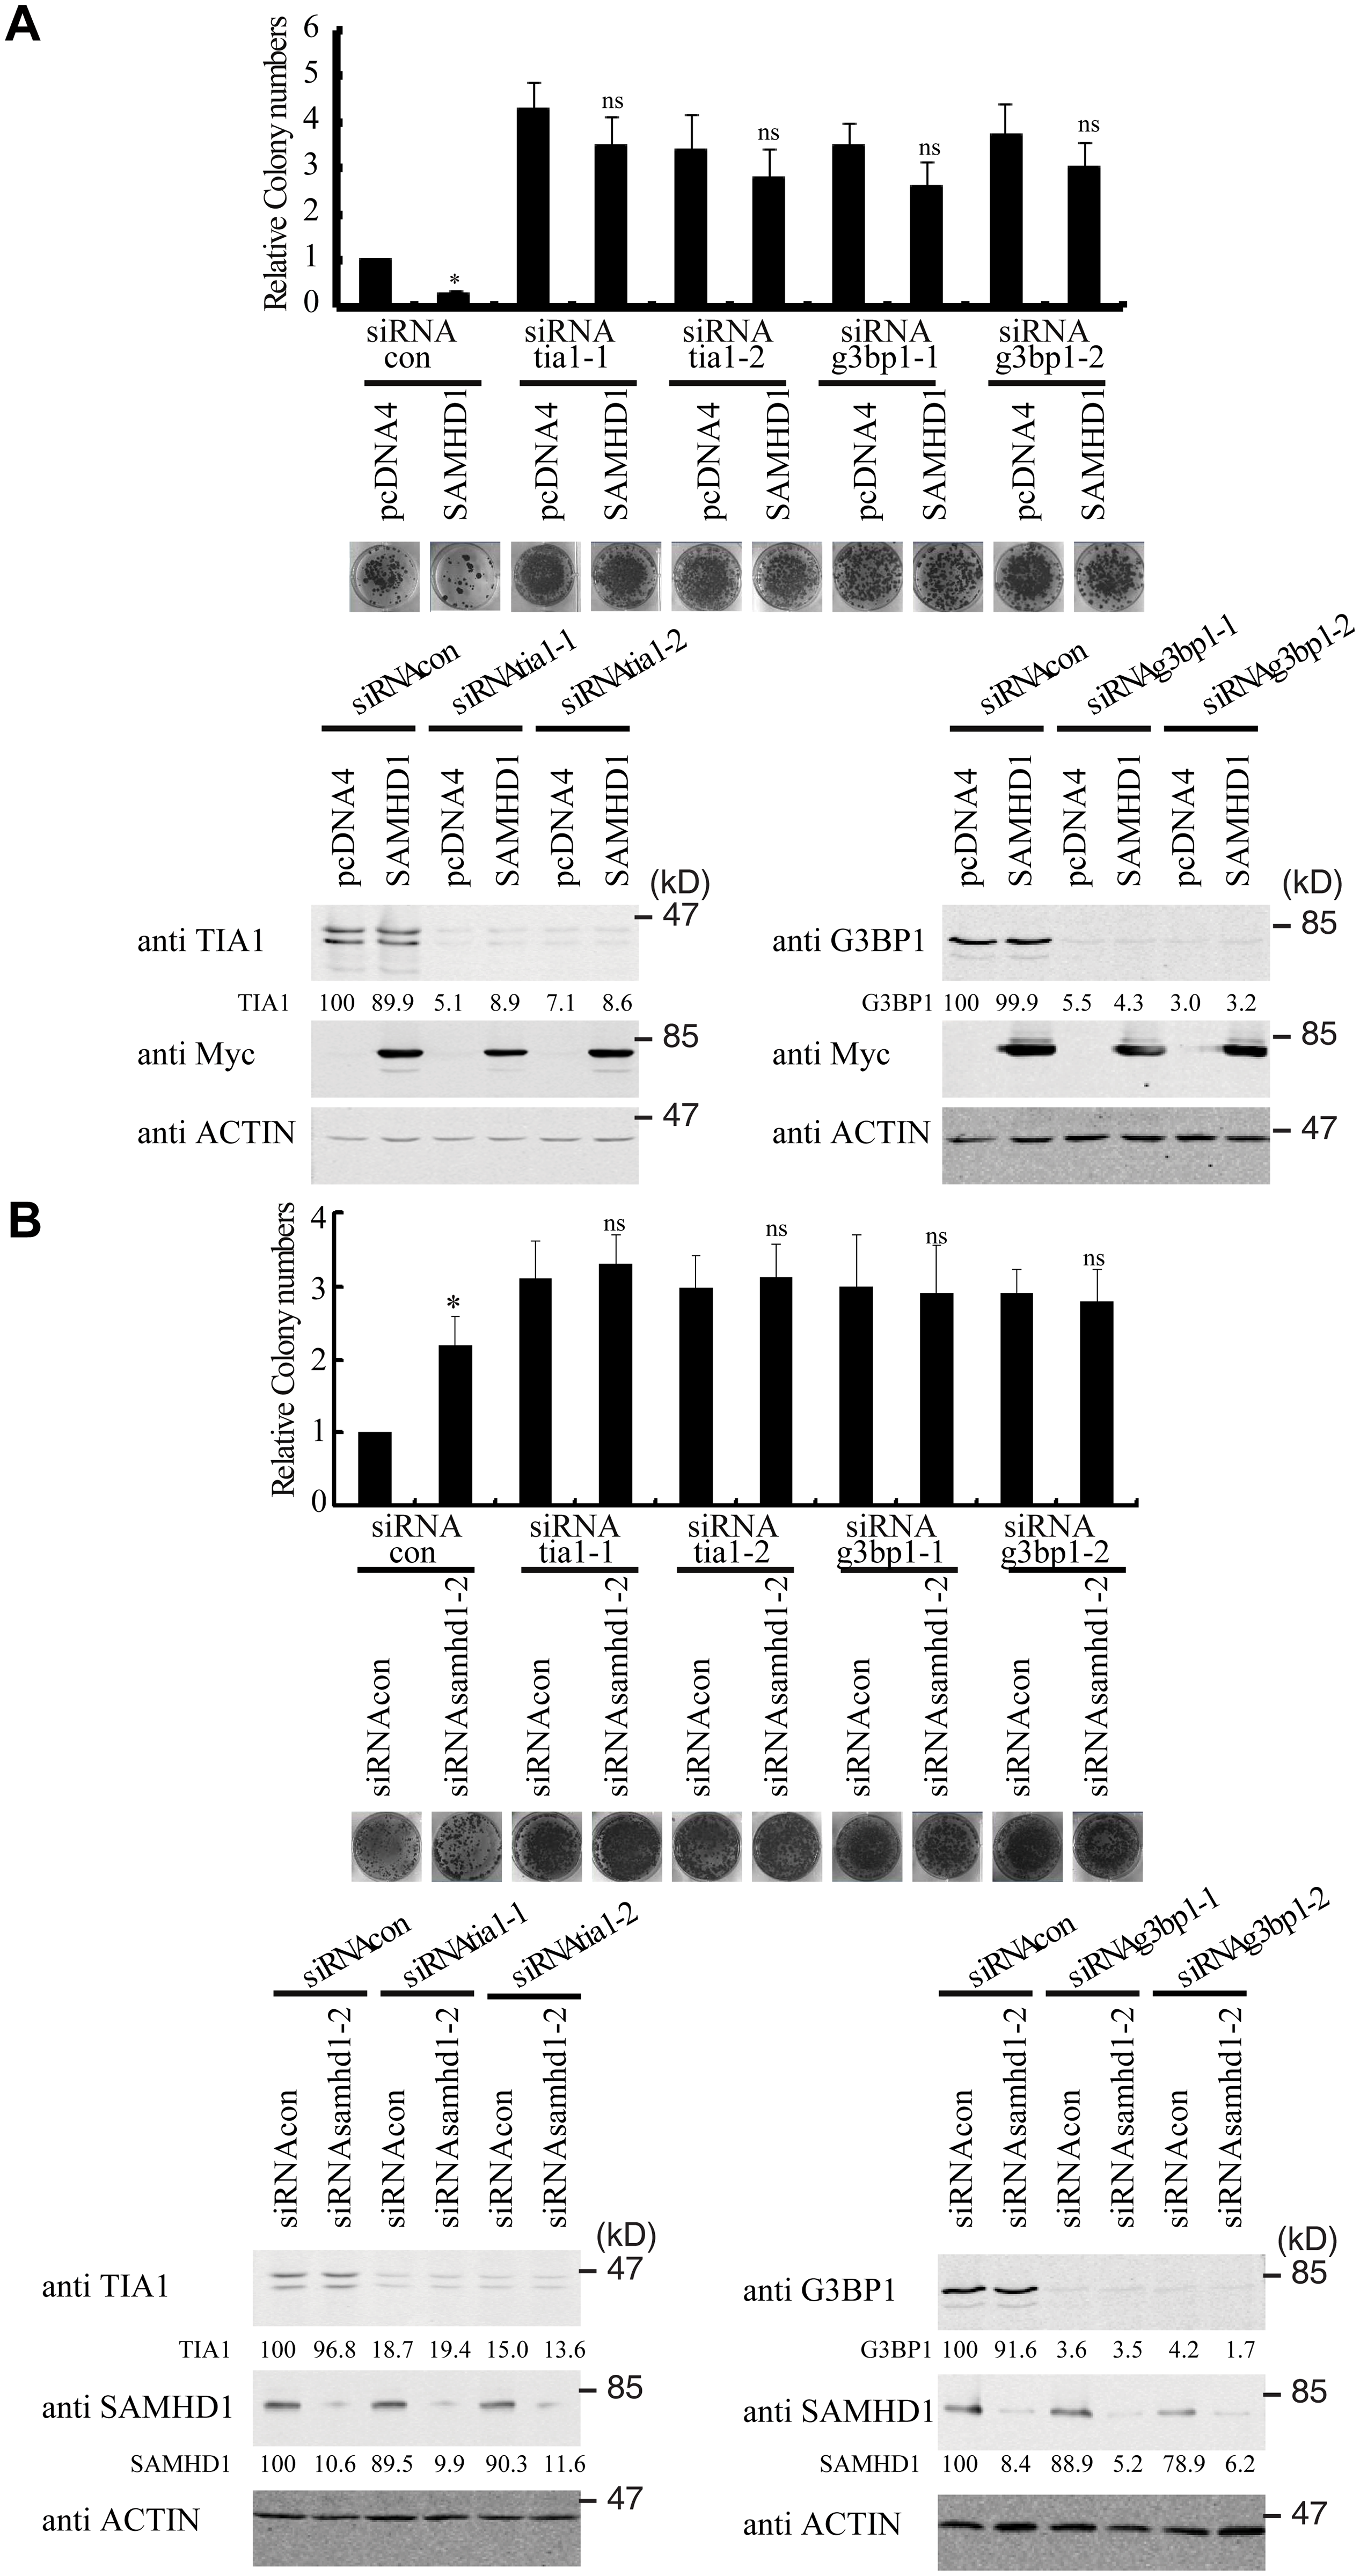 TIA1 and G3BP1 are required for SAMHD1 to inhibit LINE-1 retrotransposition.